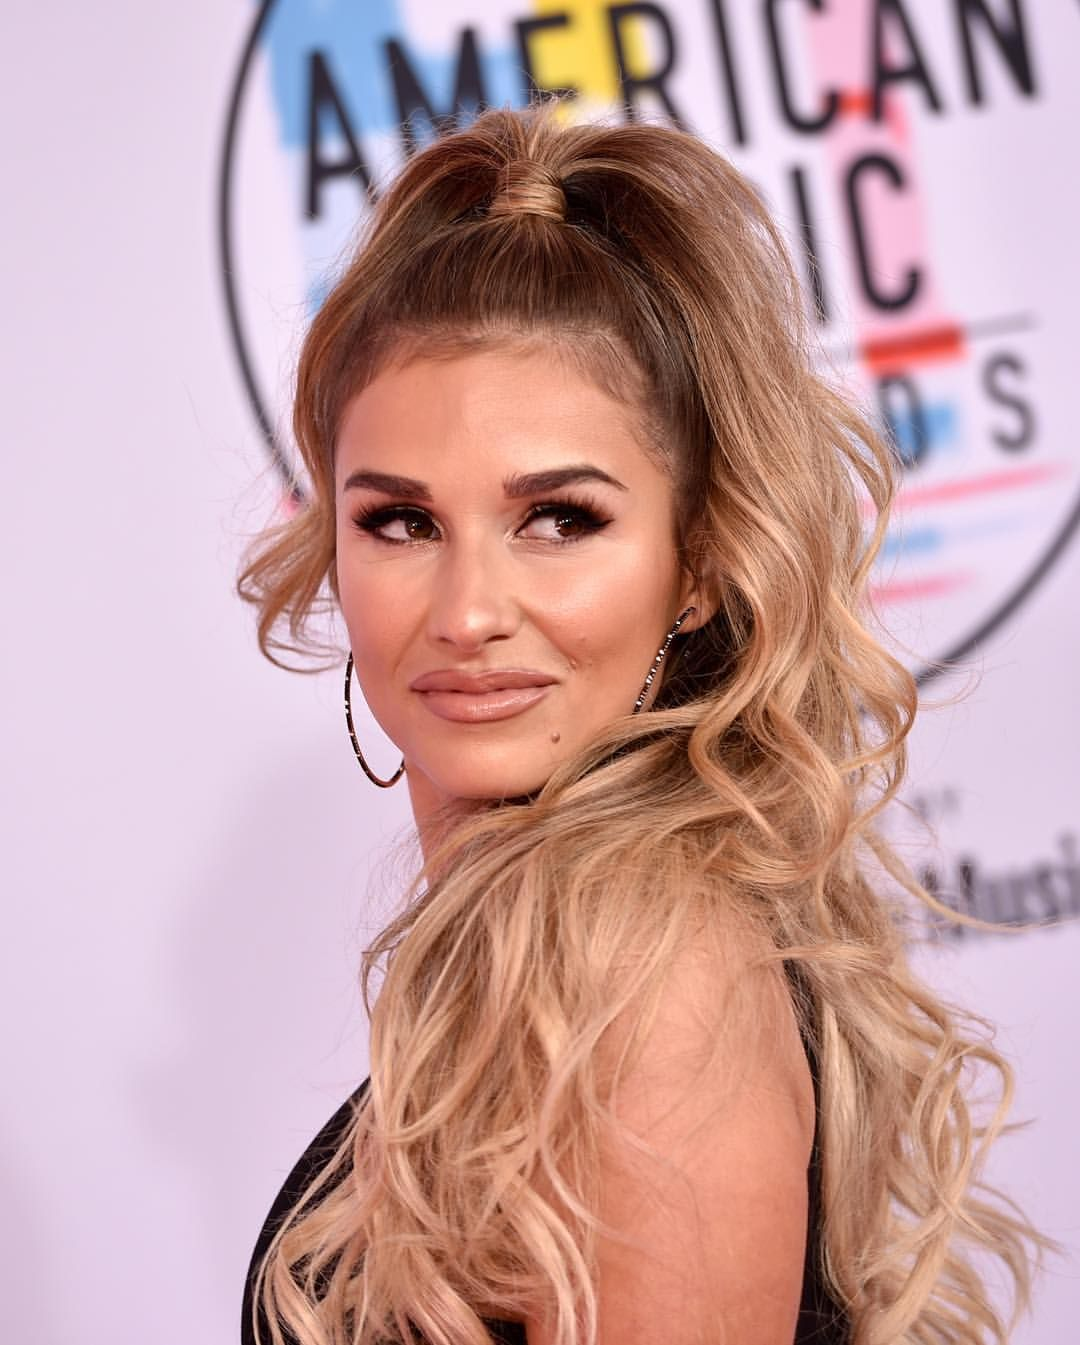 Jessie James Decker Hairstyles 2020 Long, Curly Pics